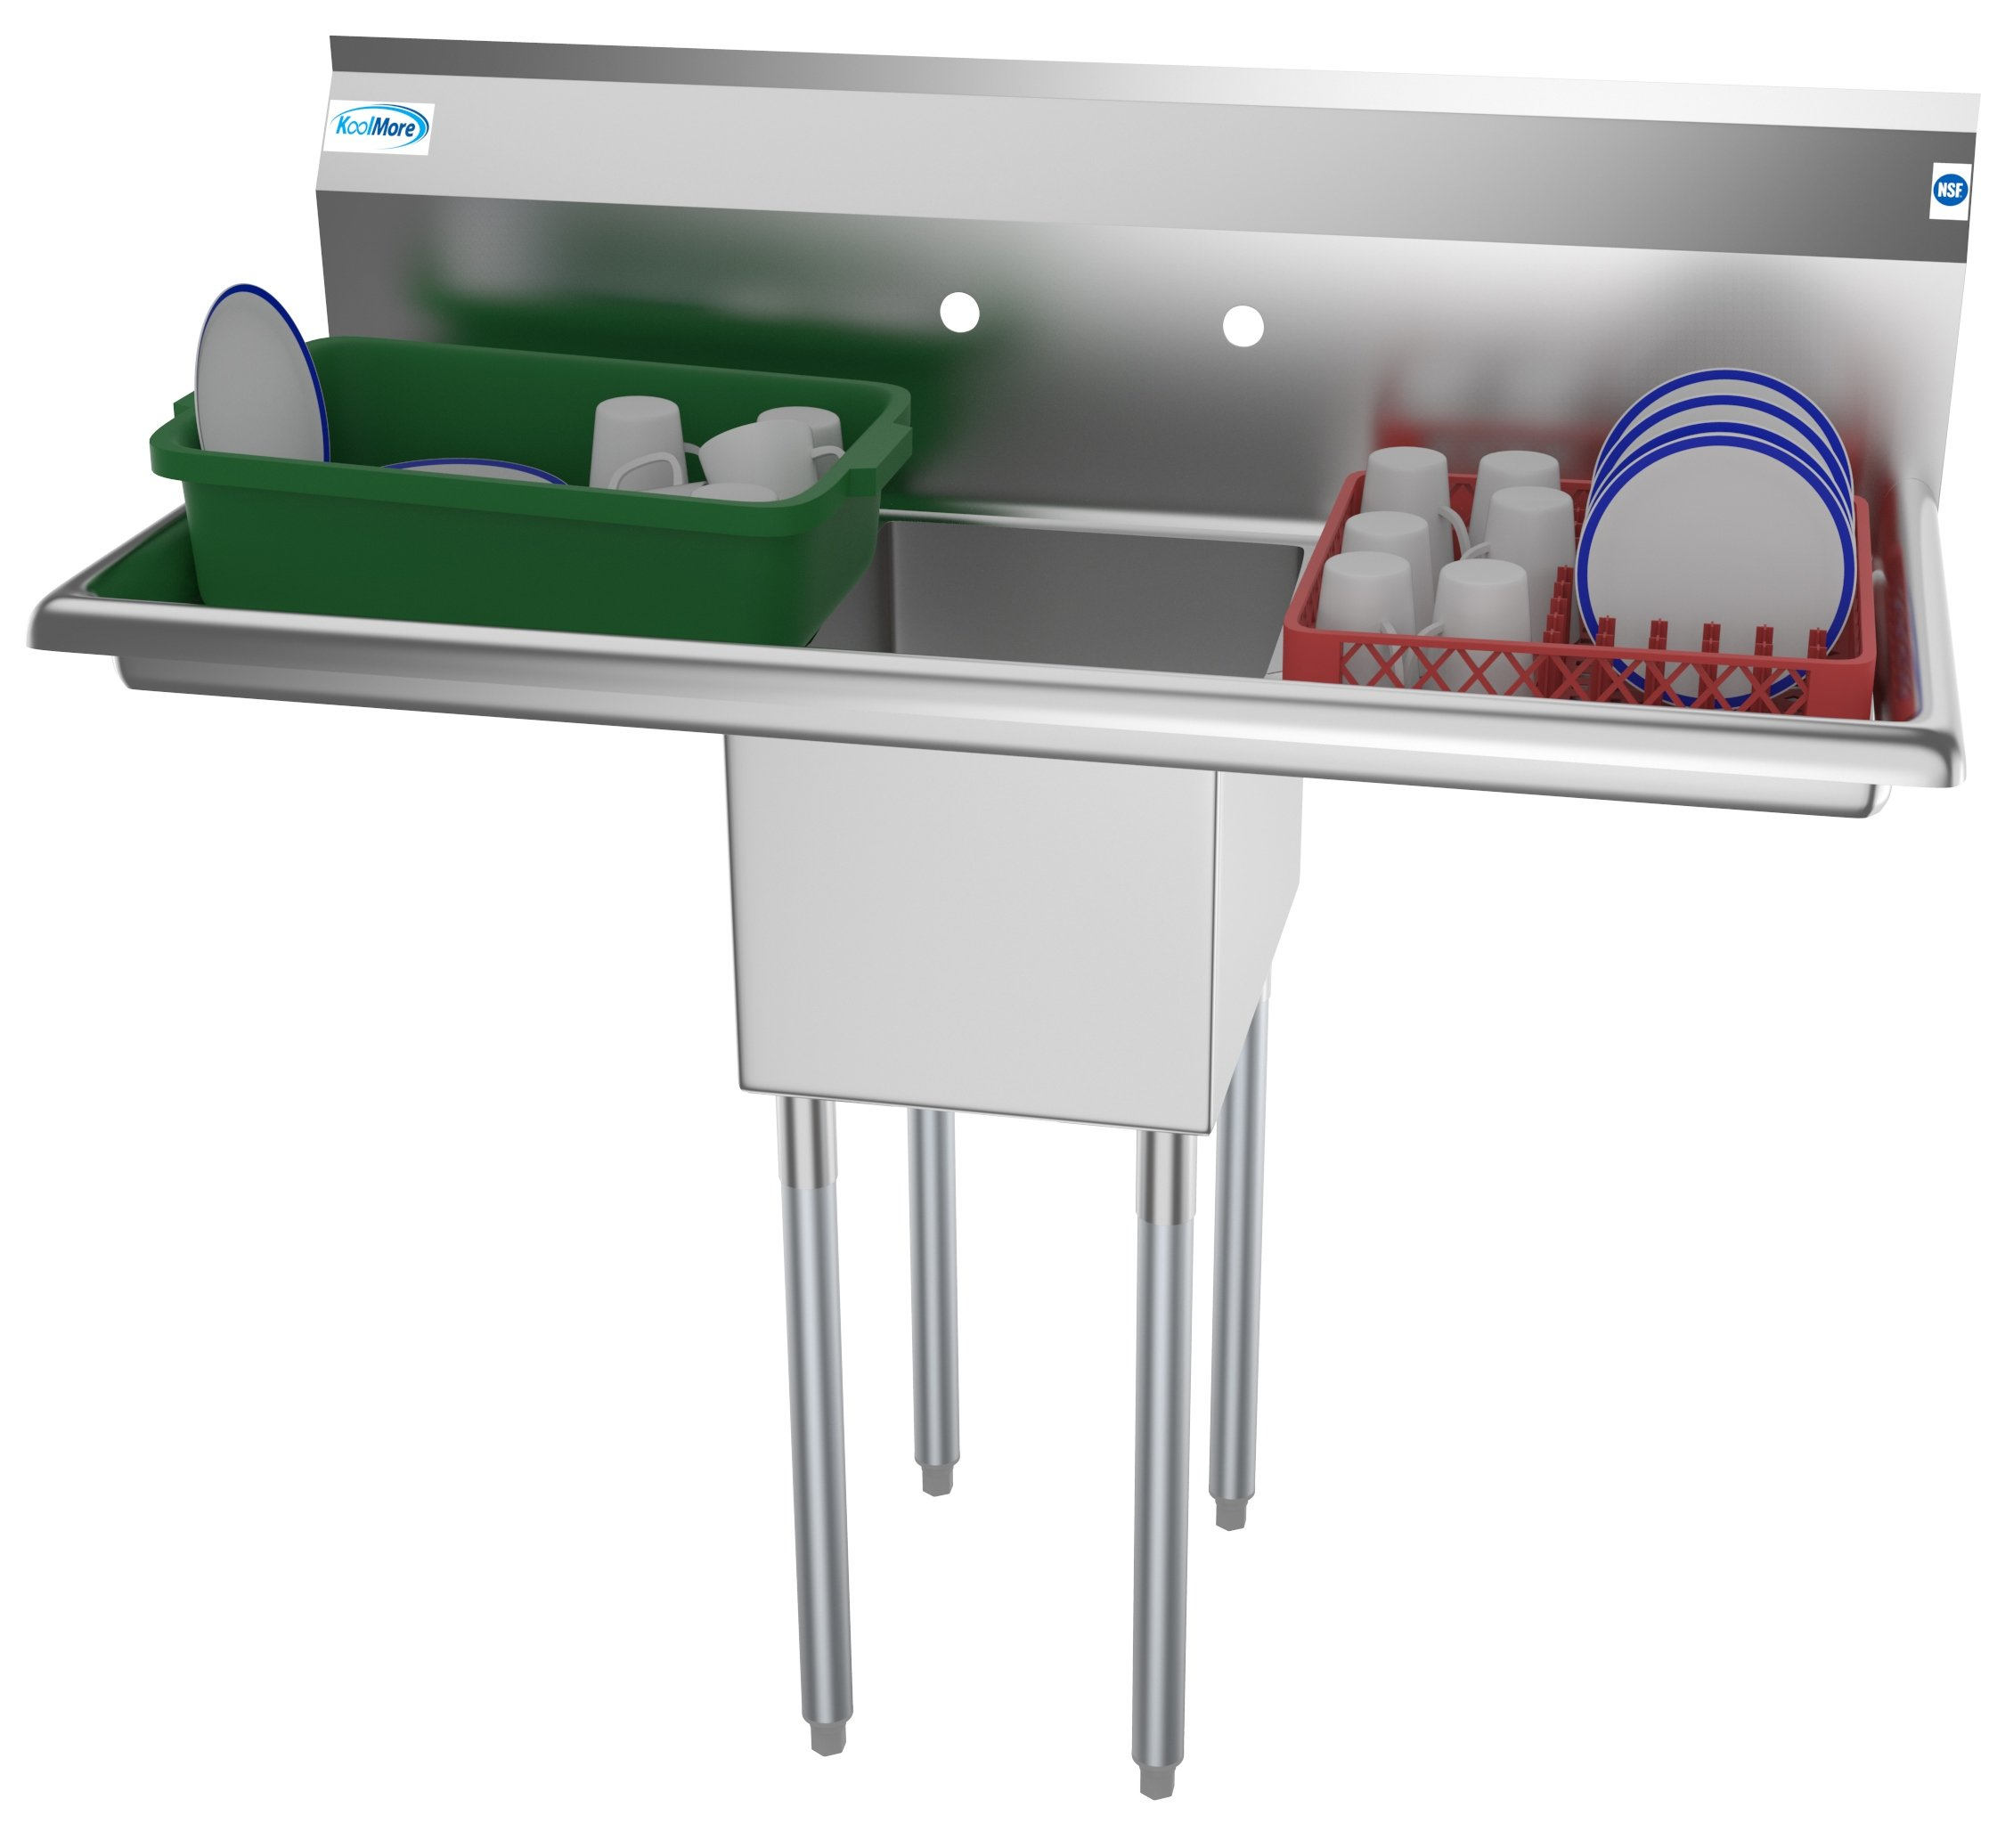 """1 Compartment 44"""" Stainless Steel Commercial Kitchen Prep & Utility Sink with 2 Drainboards - Bowl Size 12"""" x 16"""" x 10"""""""